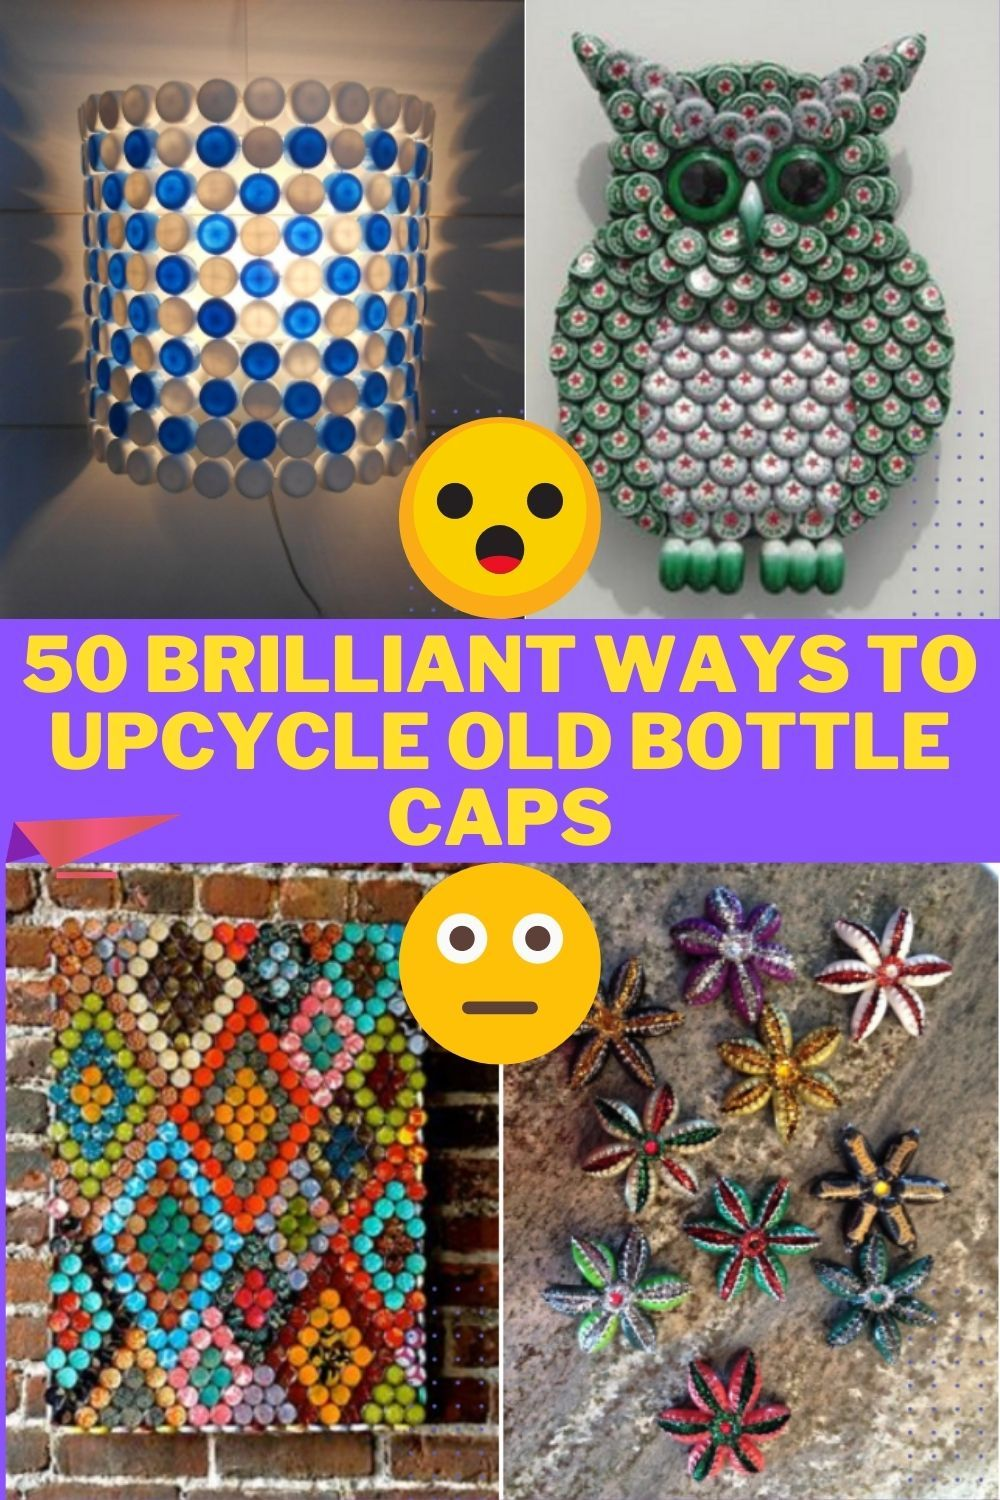 50 brilliant ways to upcycle old bottle caps